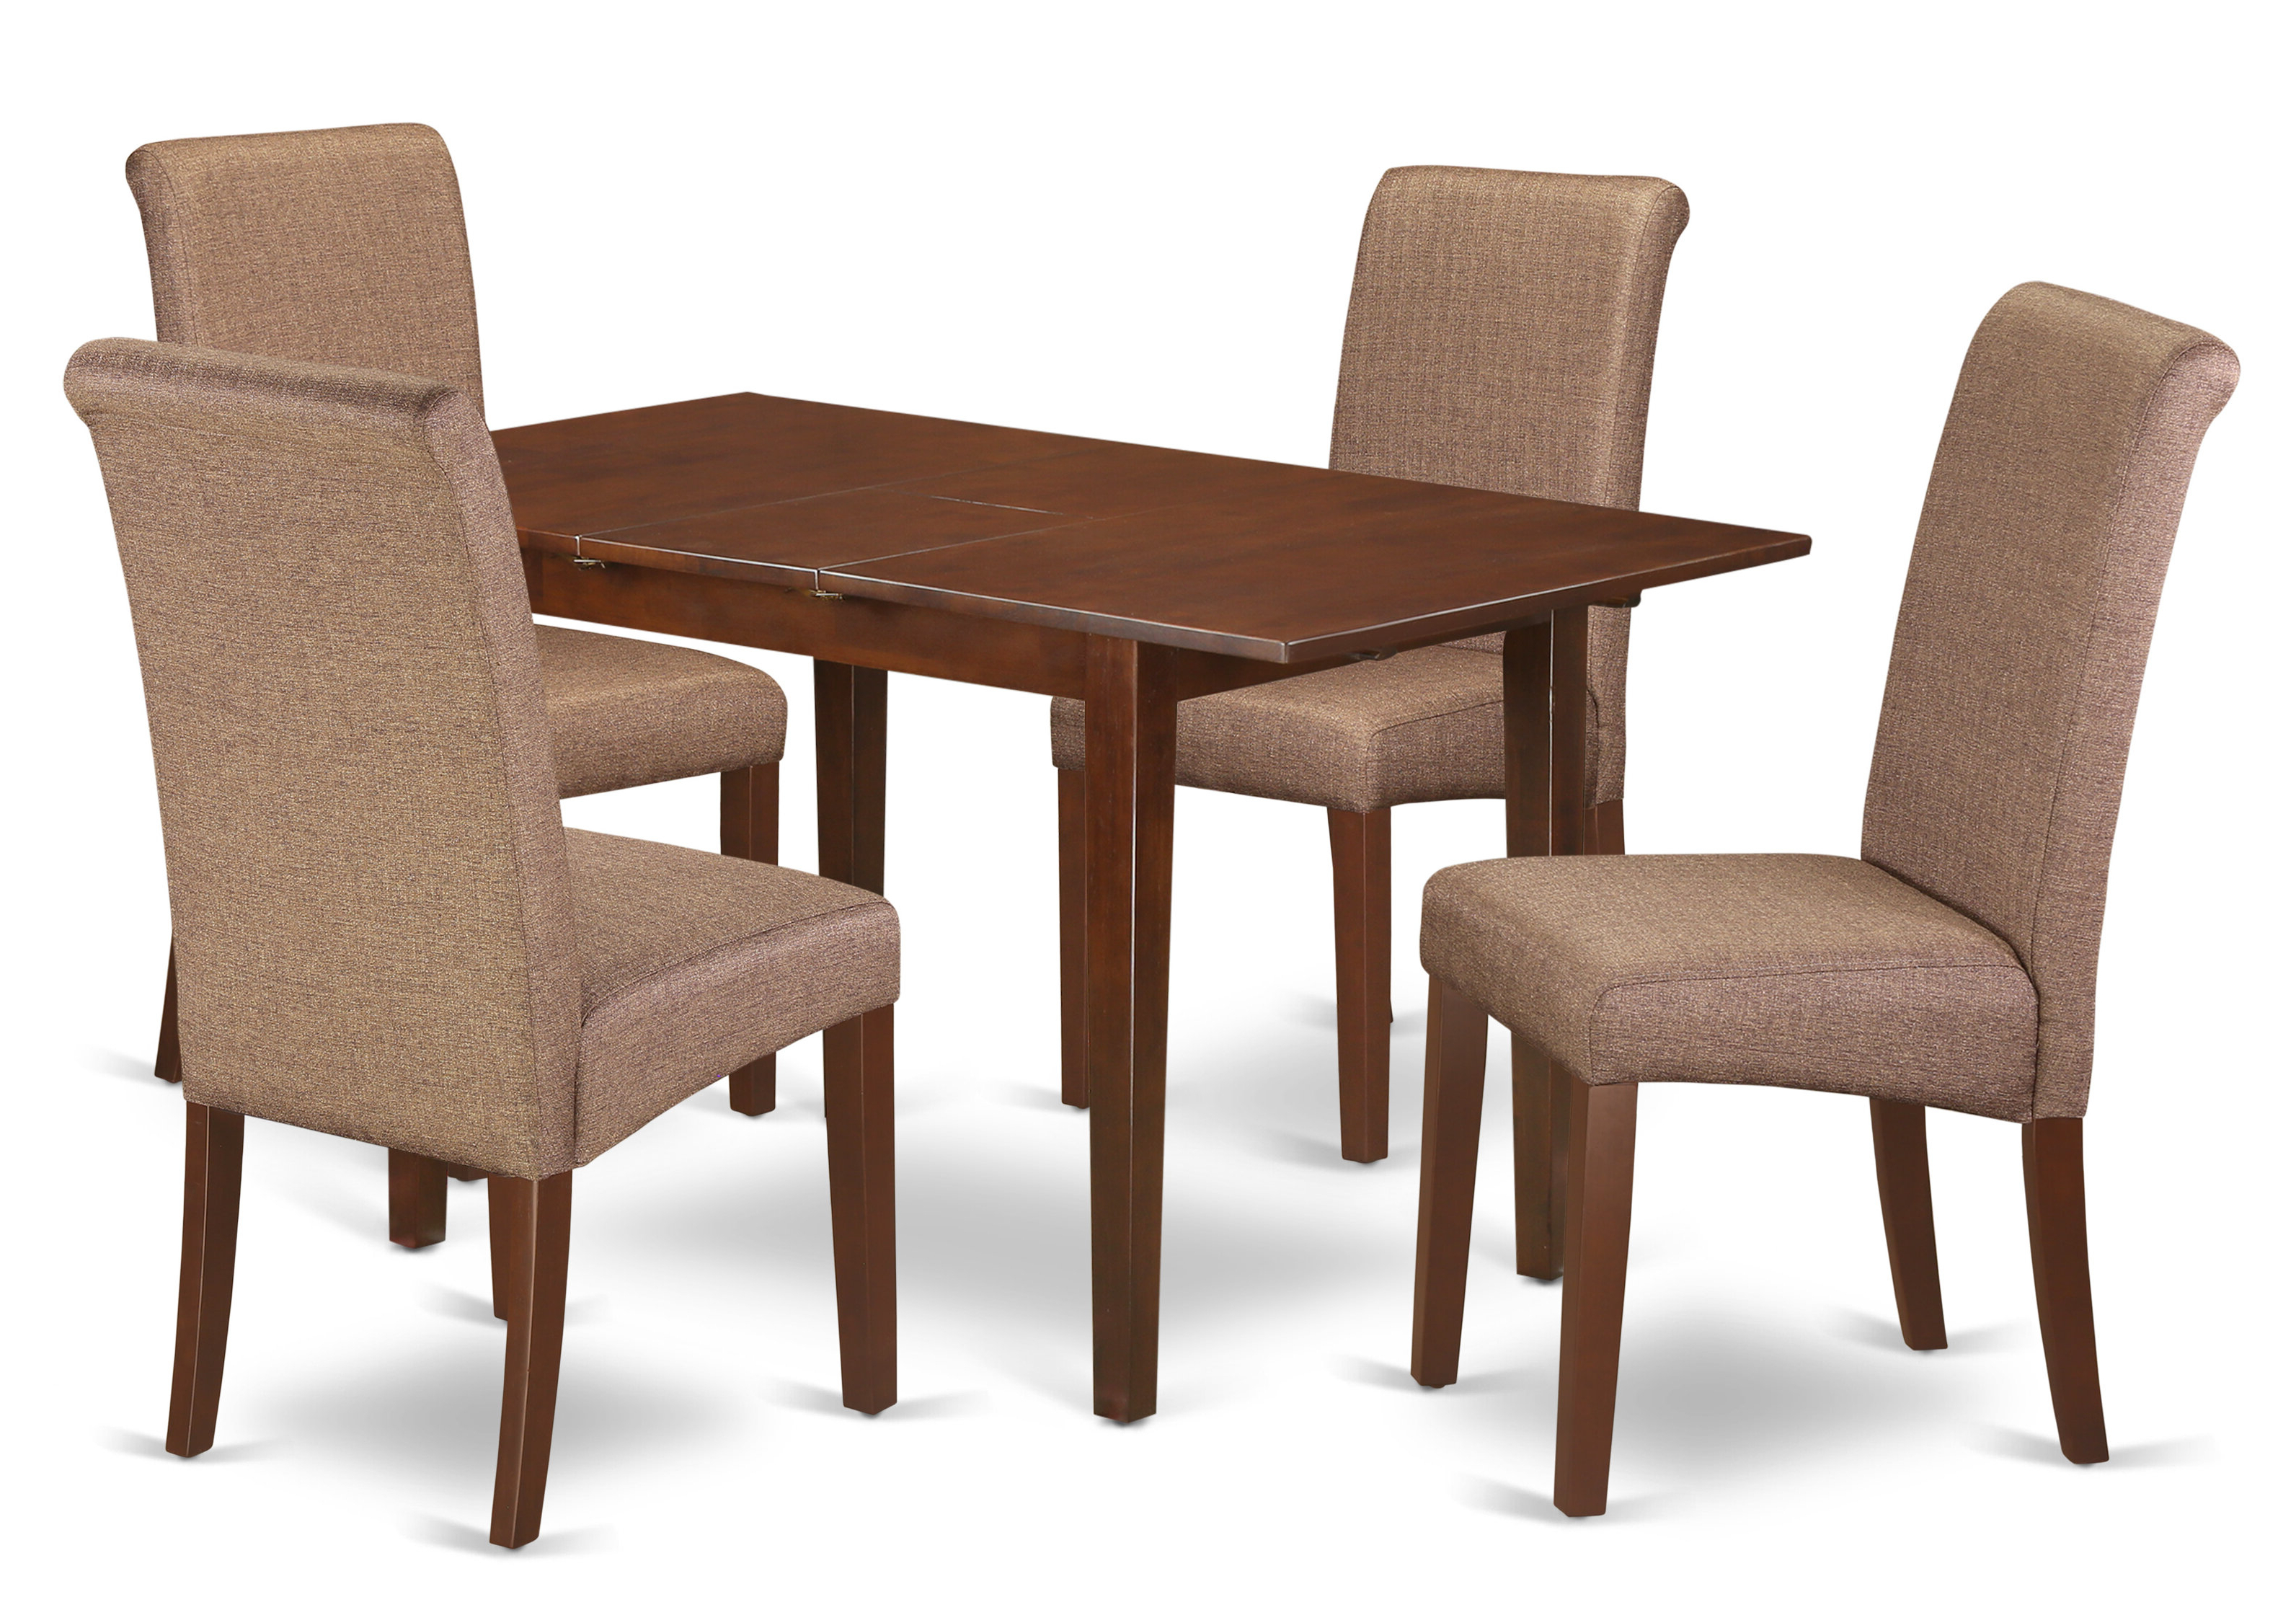 Widely Used Emmeline 5 Piece Breakfast Nook Dining Sets In Winston Porter Sarai Kitchen Table 5 Piece Extendable Solid Wood Breakfast Nook Dining Set (View 12 of 20)